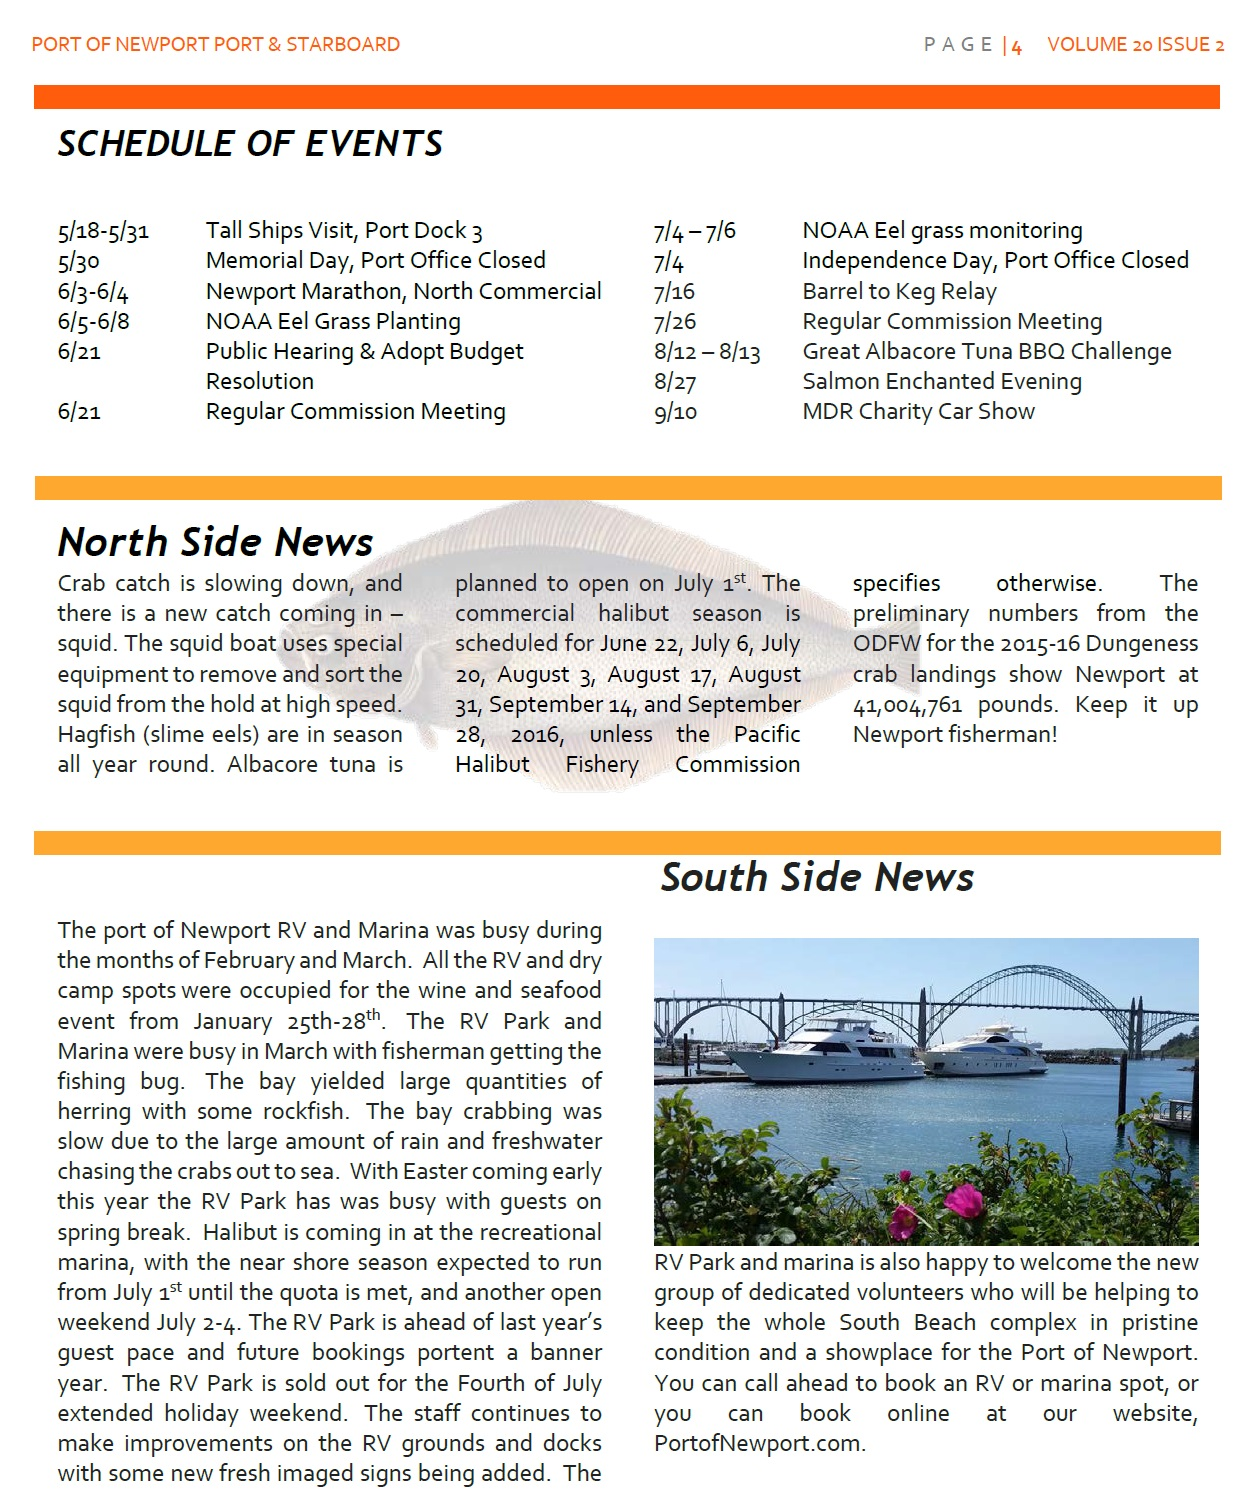 Jun2016 - Port of Newport - Port & Starboard Newsletter Volume 20 Issue 2 online edition 4